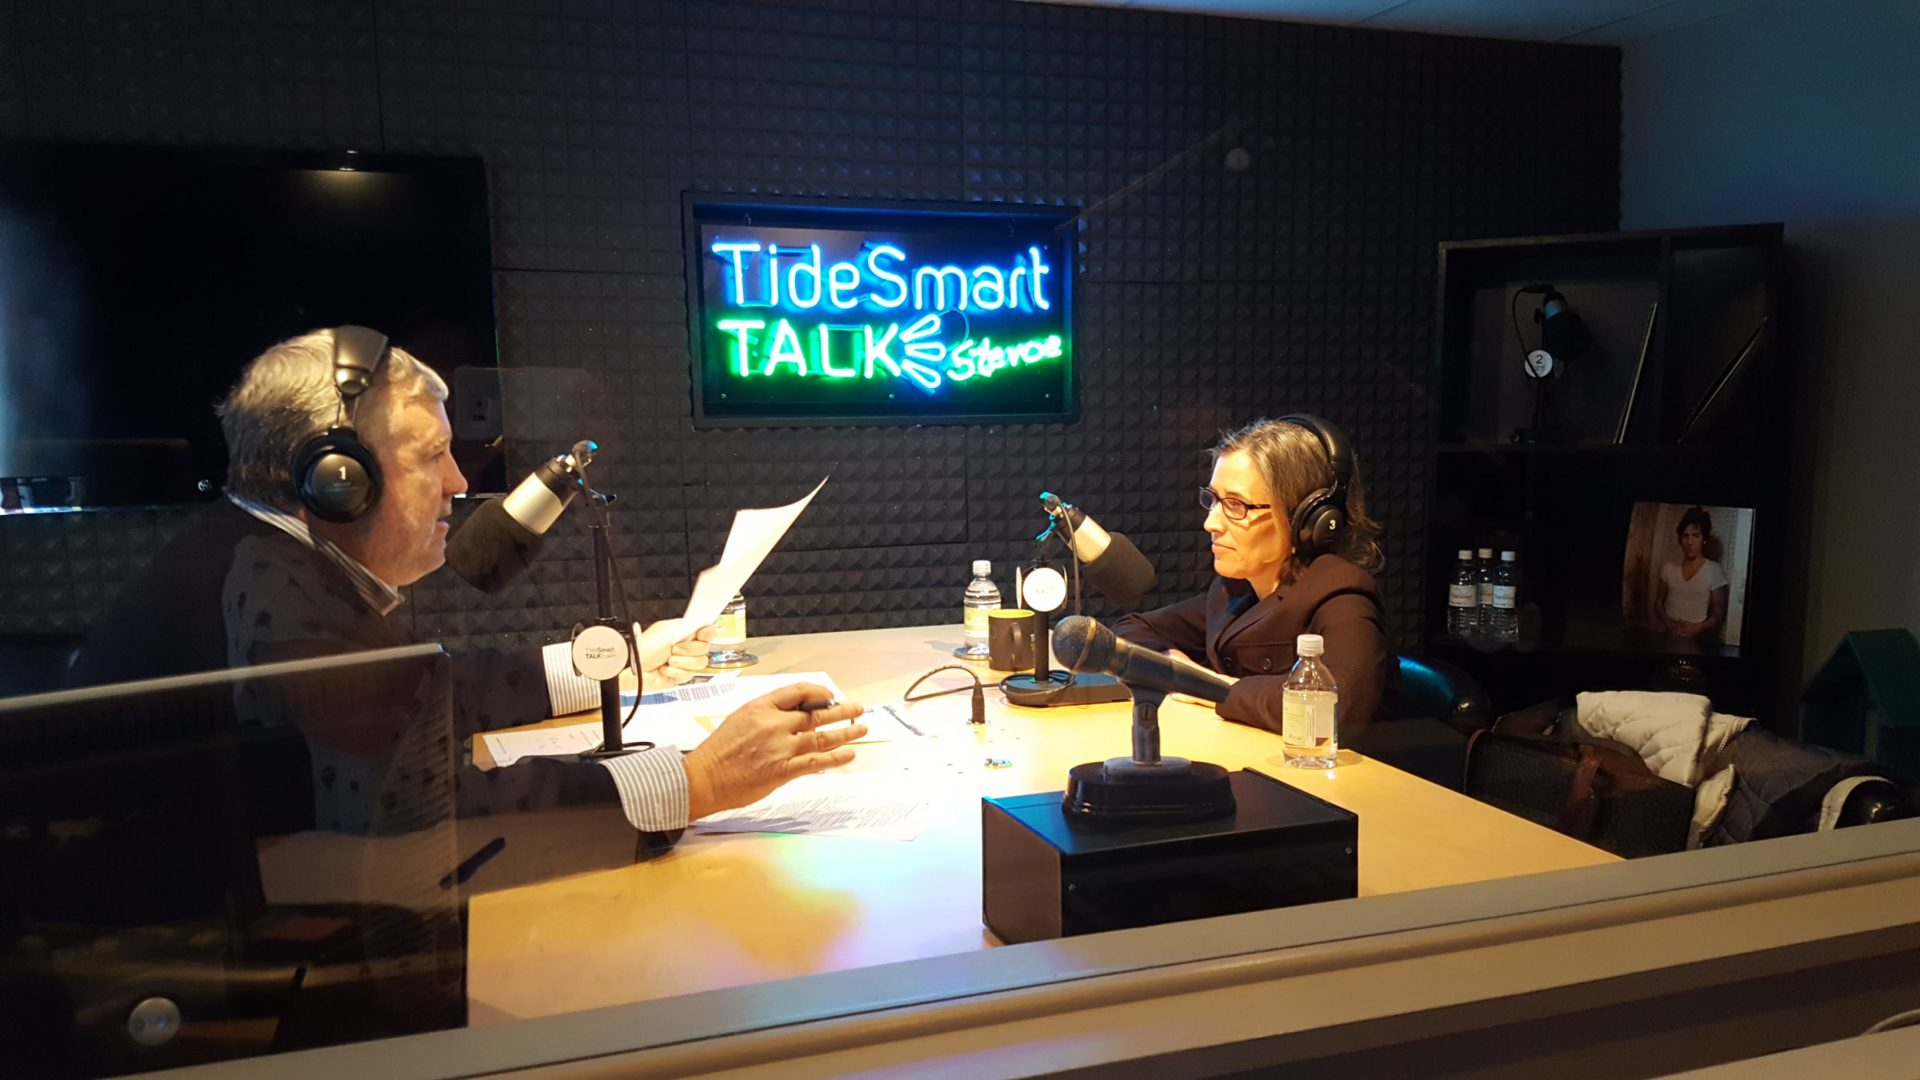 Host of TideSmart Talk with Stevoe, Steve Woods, welcomed Alison Beyea, Executive Director of the ACLU Maine (at right).